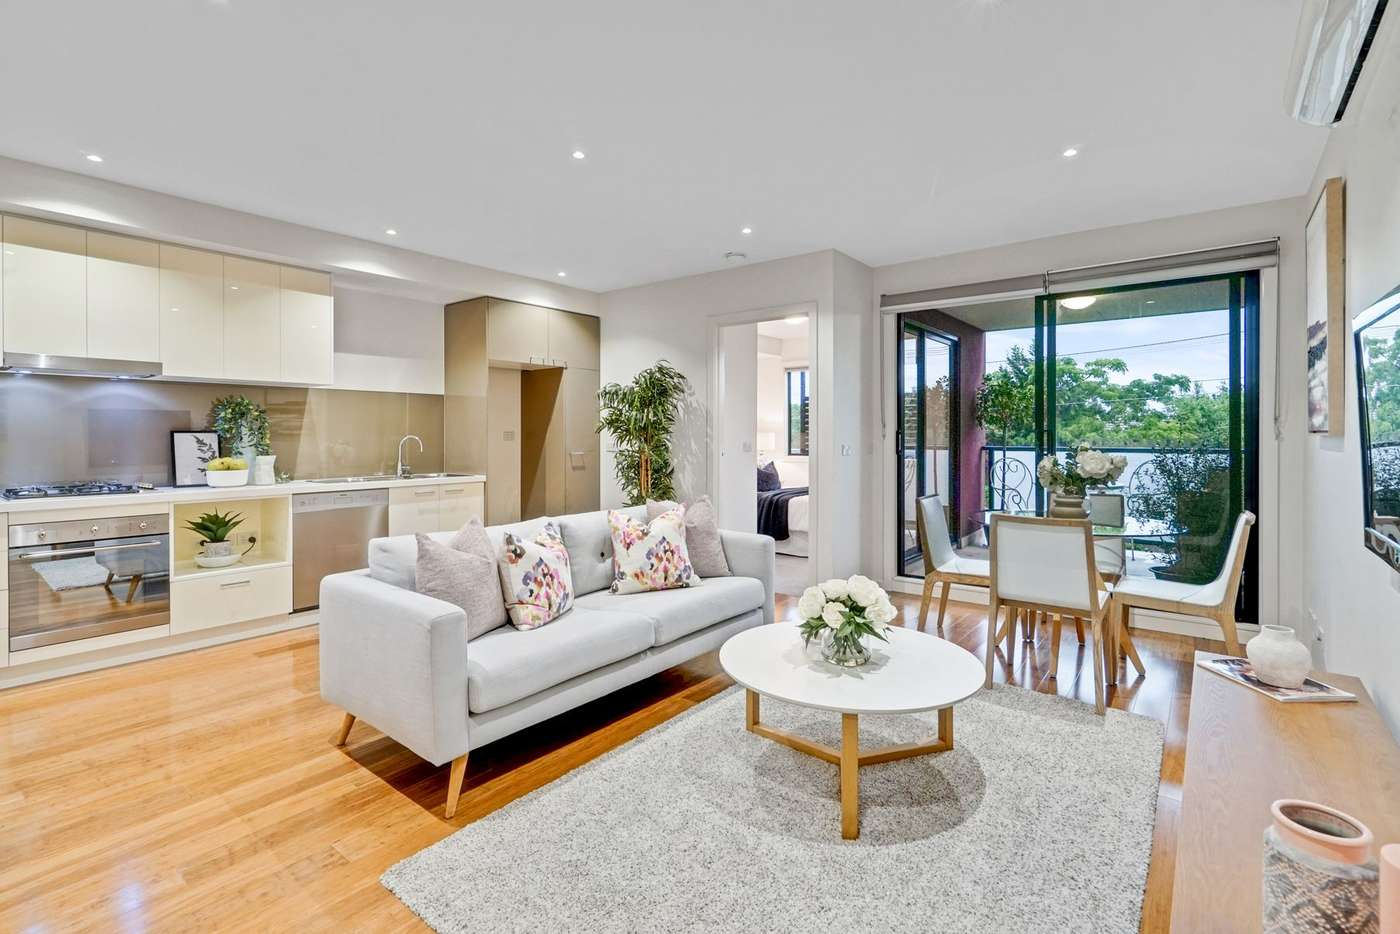 Main view of Homely apartment listing, 119/436-442 Huntingdale Road, Mount Waverley VIC 3149